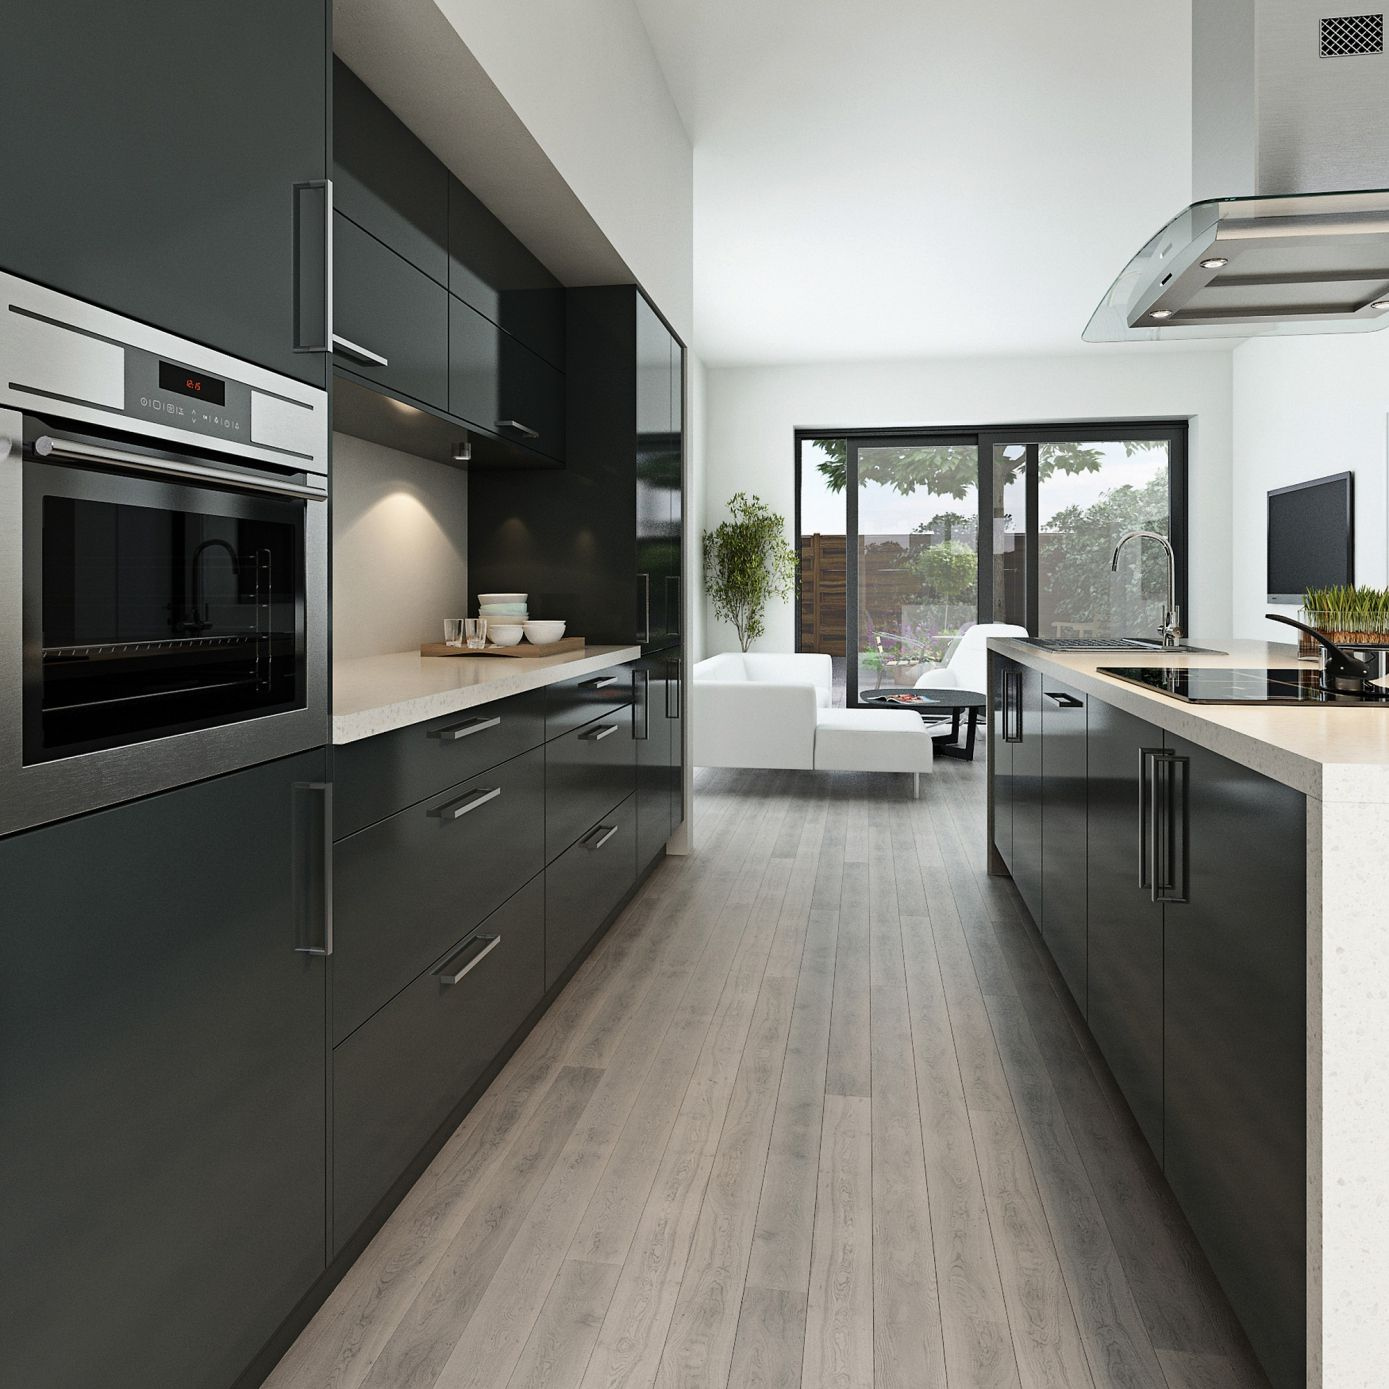 Low Budget Kitchen Cabinets: Pin By Hendro Birowo On Modern Design Low Budget In 2019